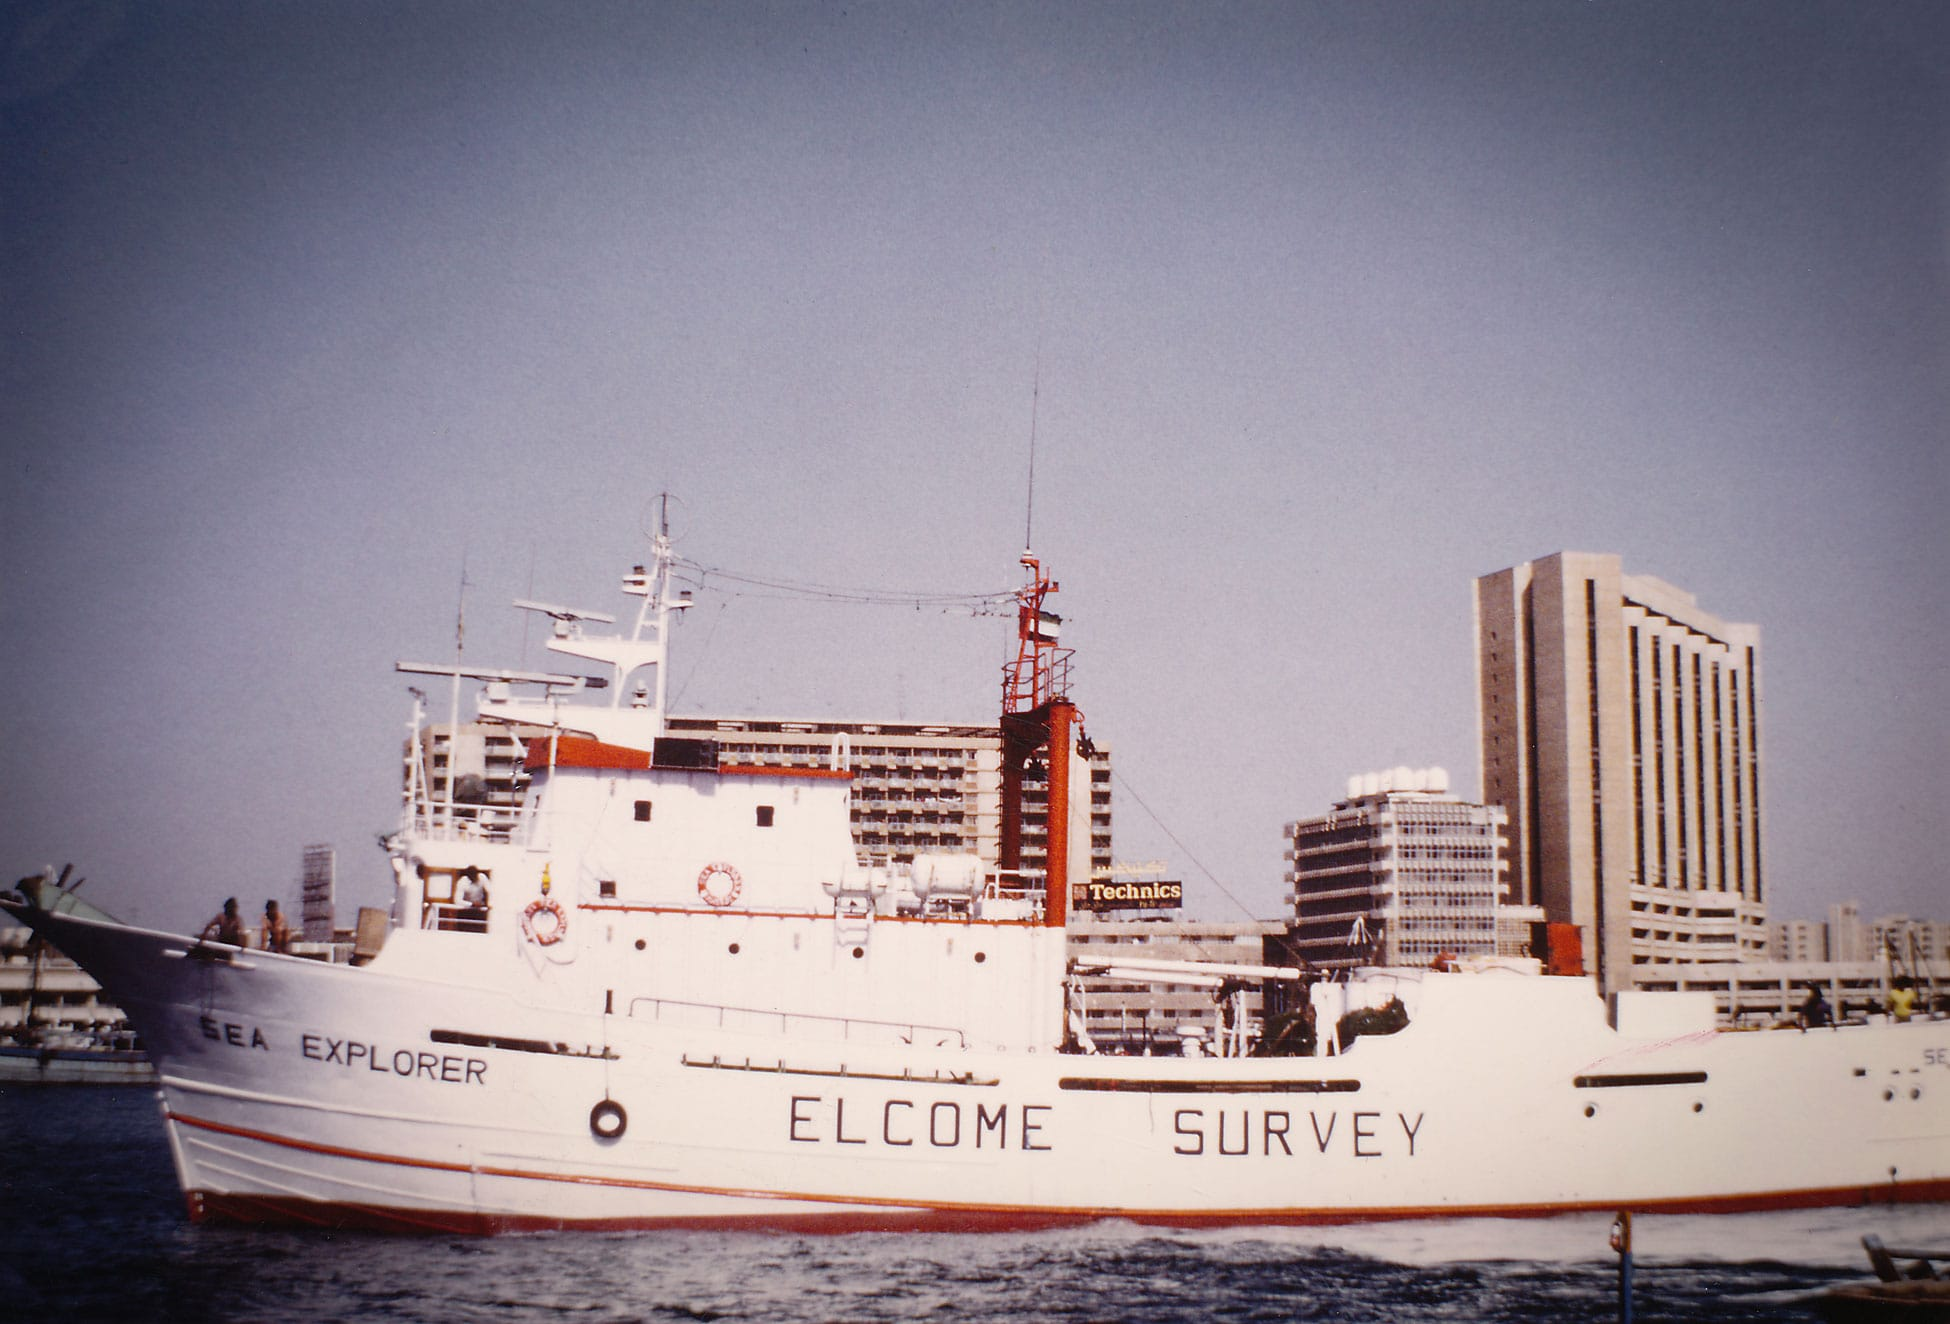 Elcome Survey Ship Sea Explorer